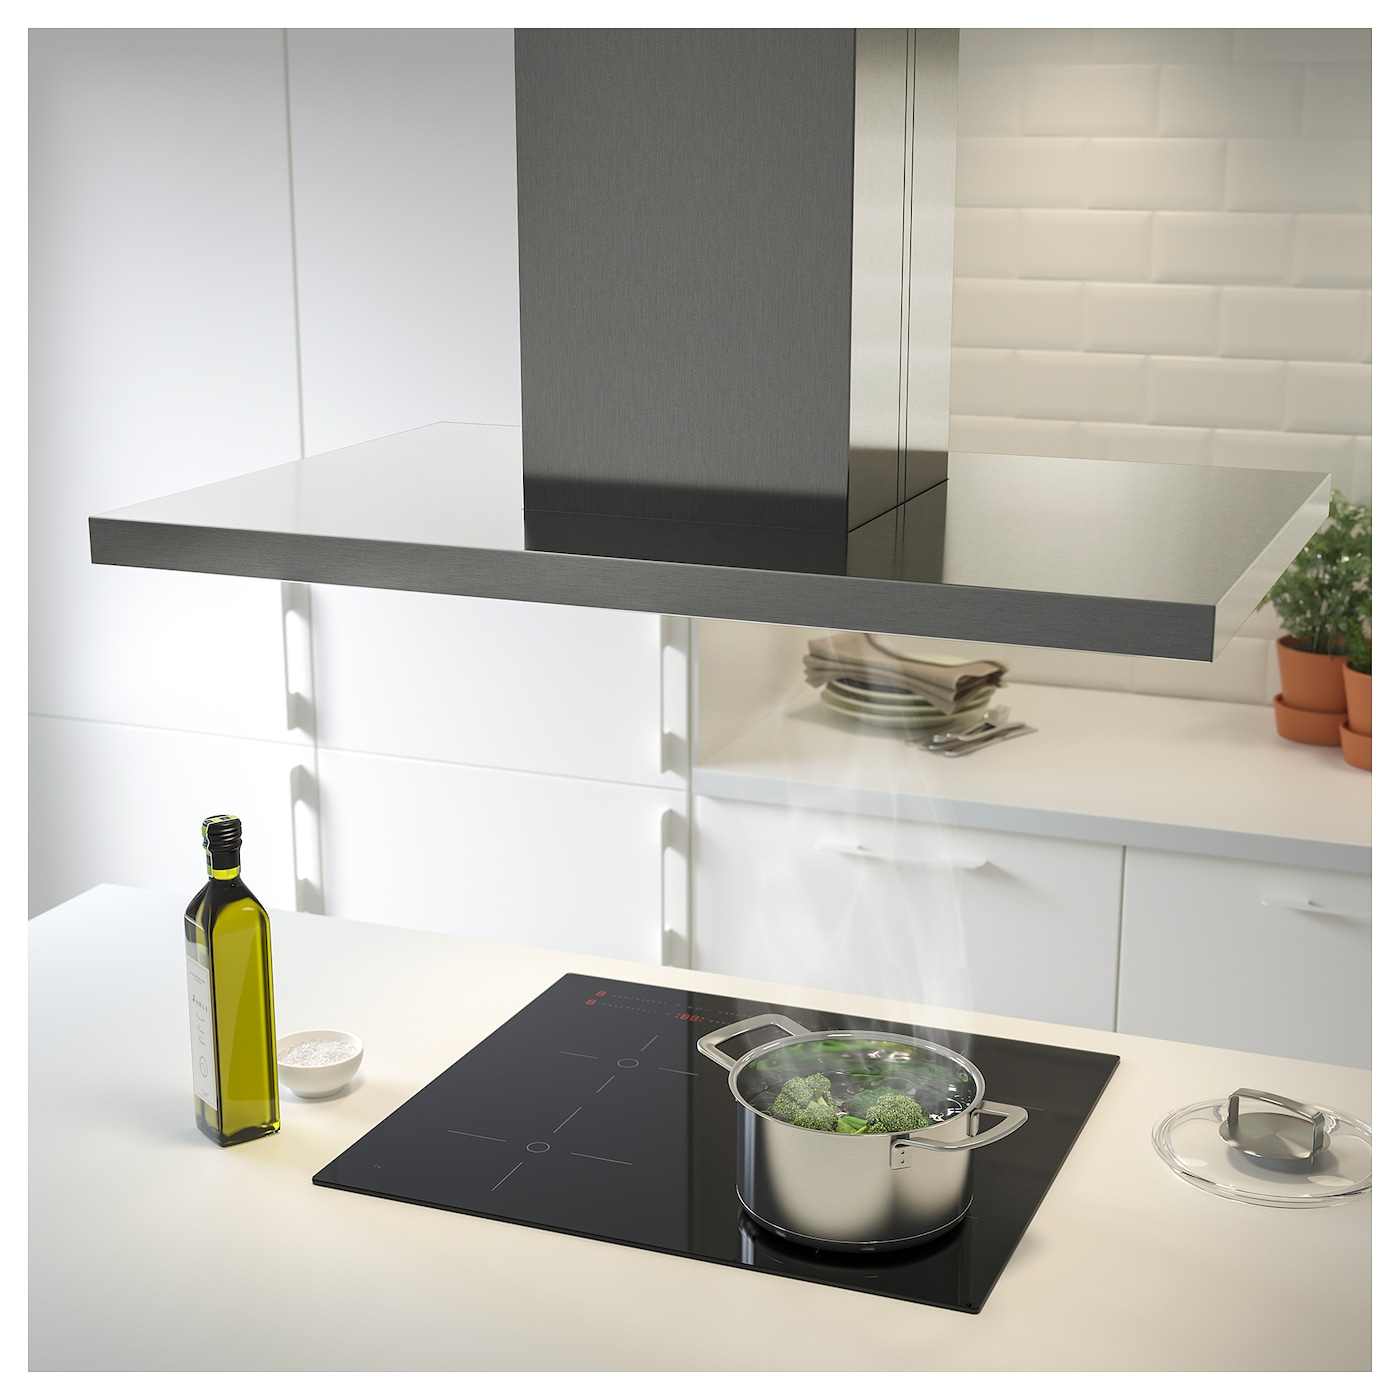 IKEA SVÄVANDE ceiling-mounted extractor hood Control panel placed at front for easy access and use.